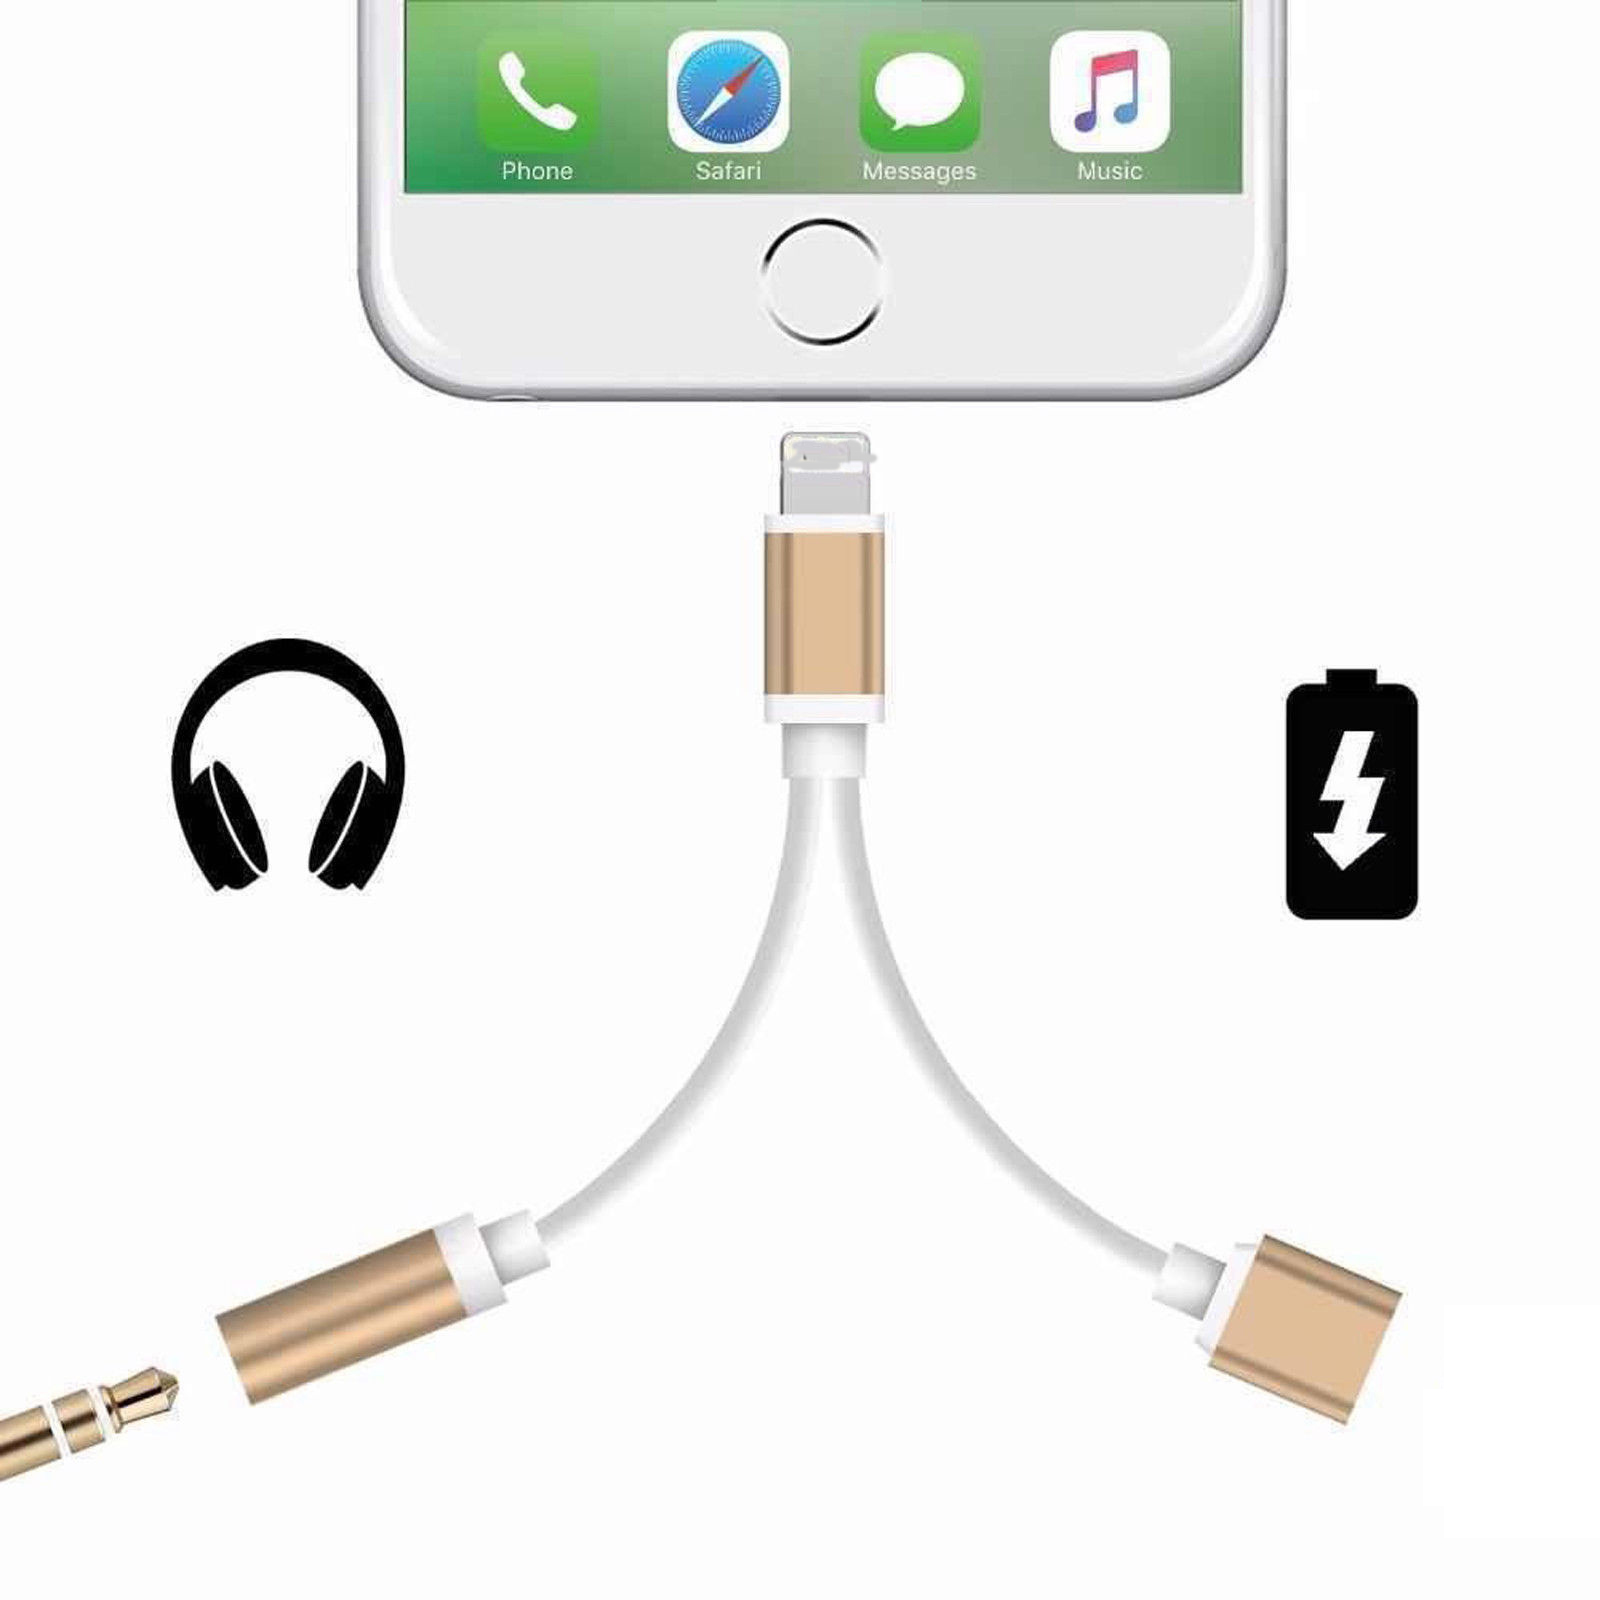 2 In1 Earphone Charger Splitter Adapter For IPhone 7 8 Plus Dual 3.5 Jack Headphone Charging Cable Converter For Iphone7